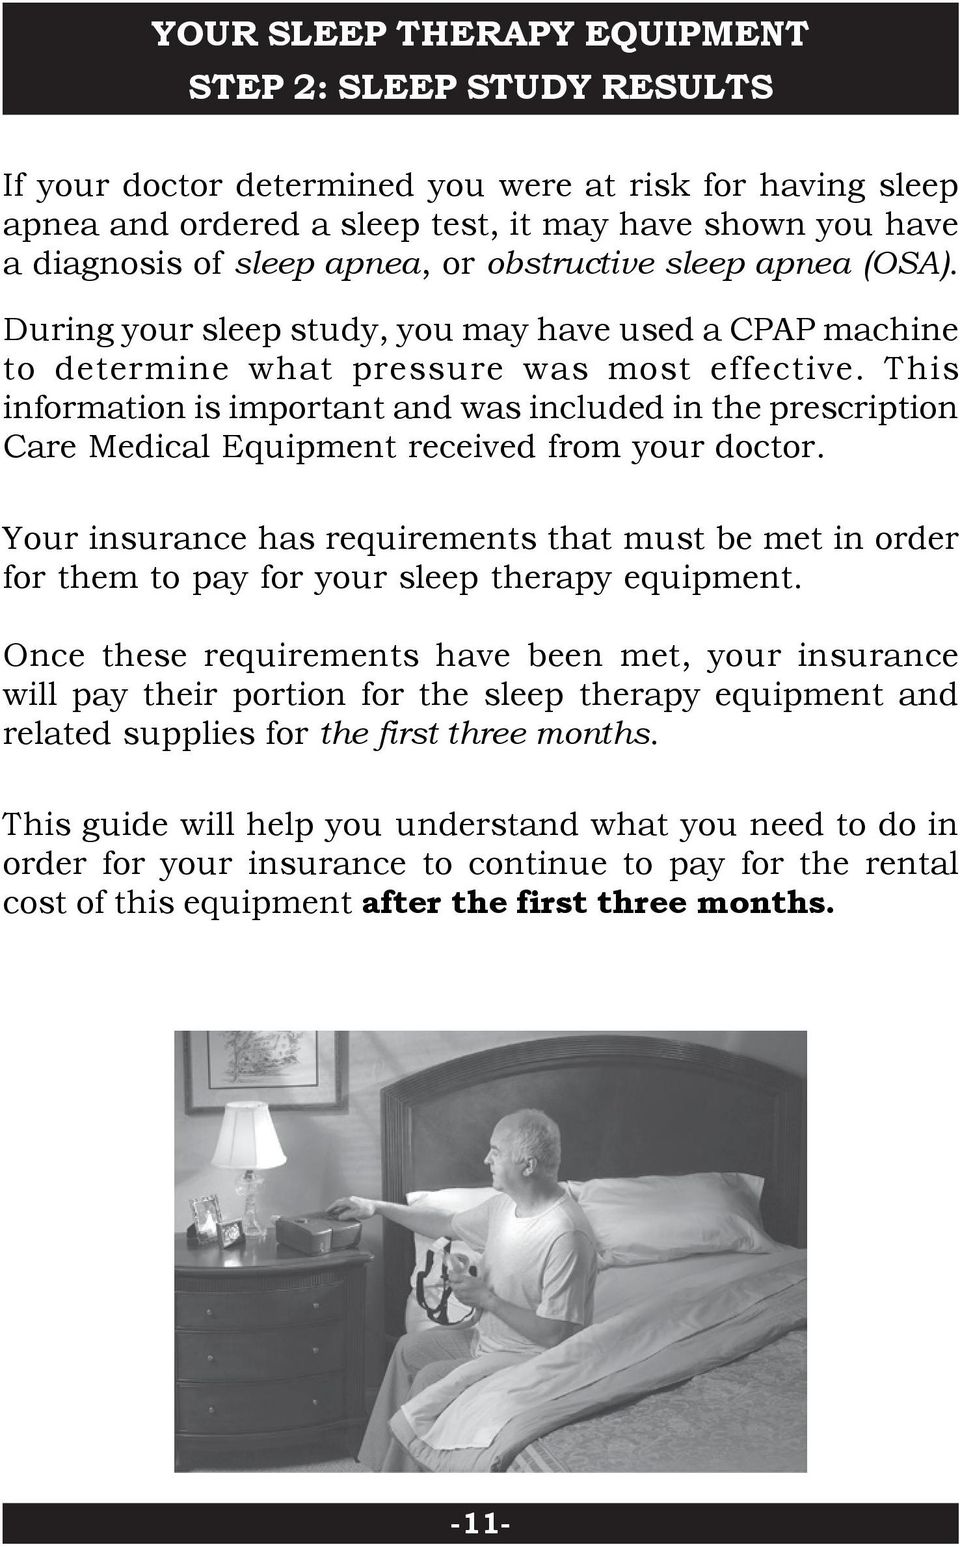 SLEEP THERAPY GUIDE  - PDF